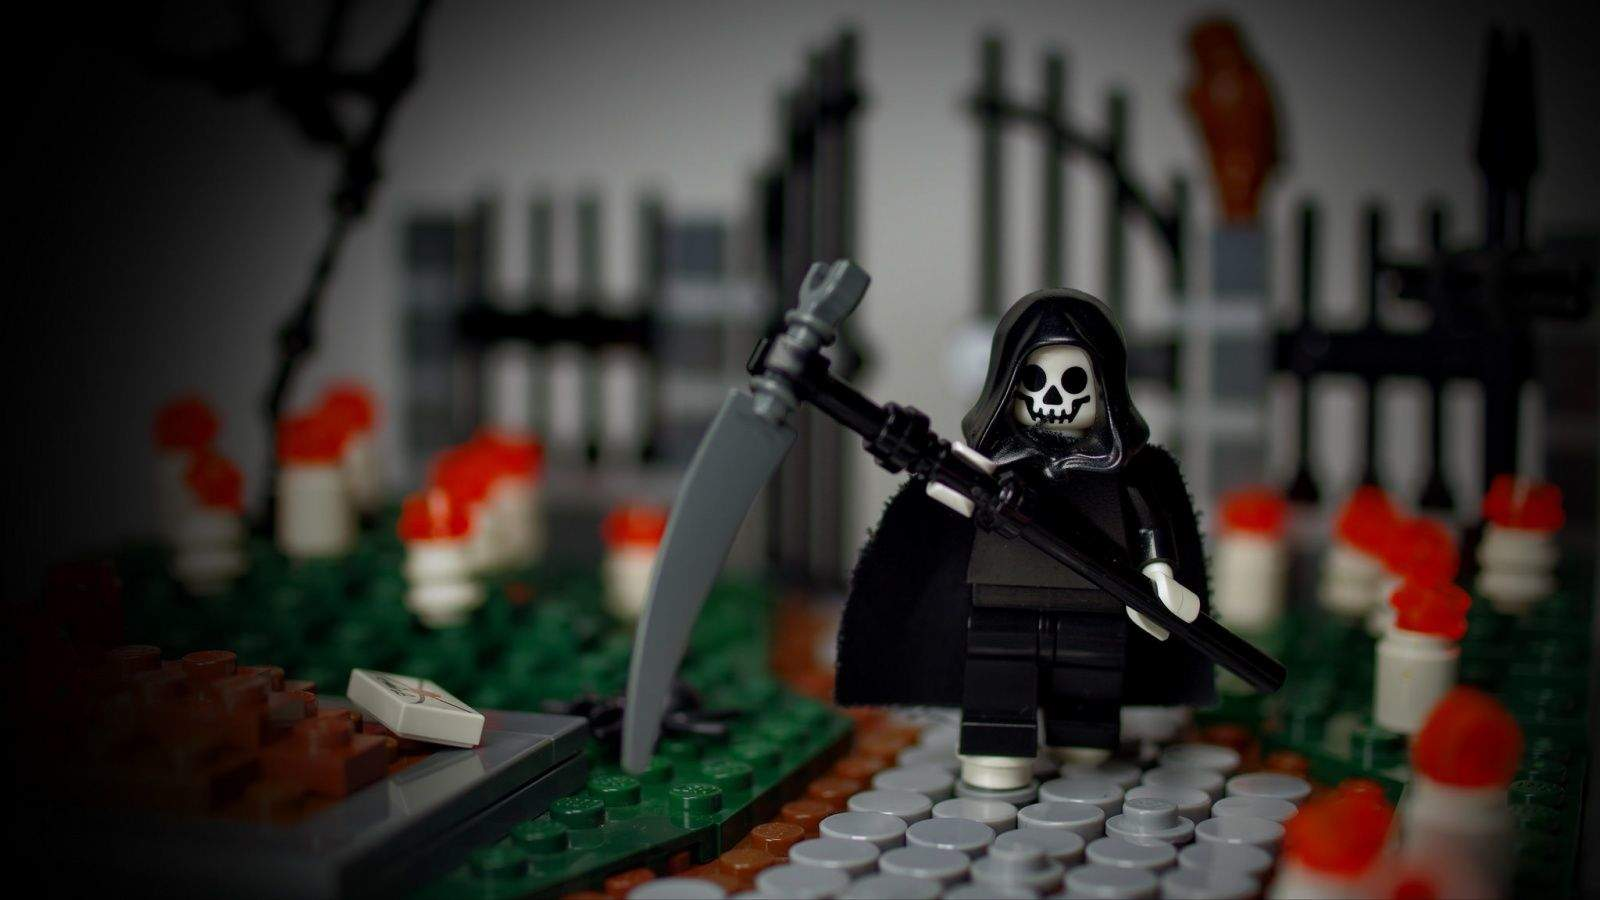 The Grim Reaper: Photo: Ordo/Flickr